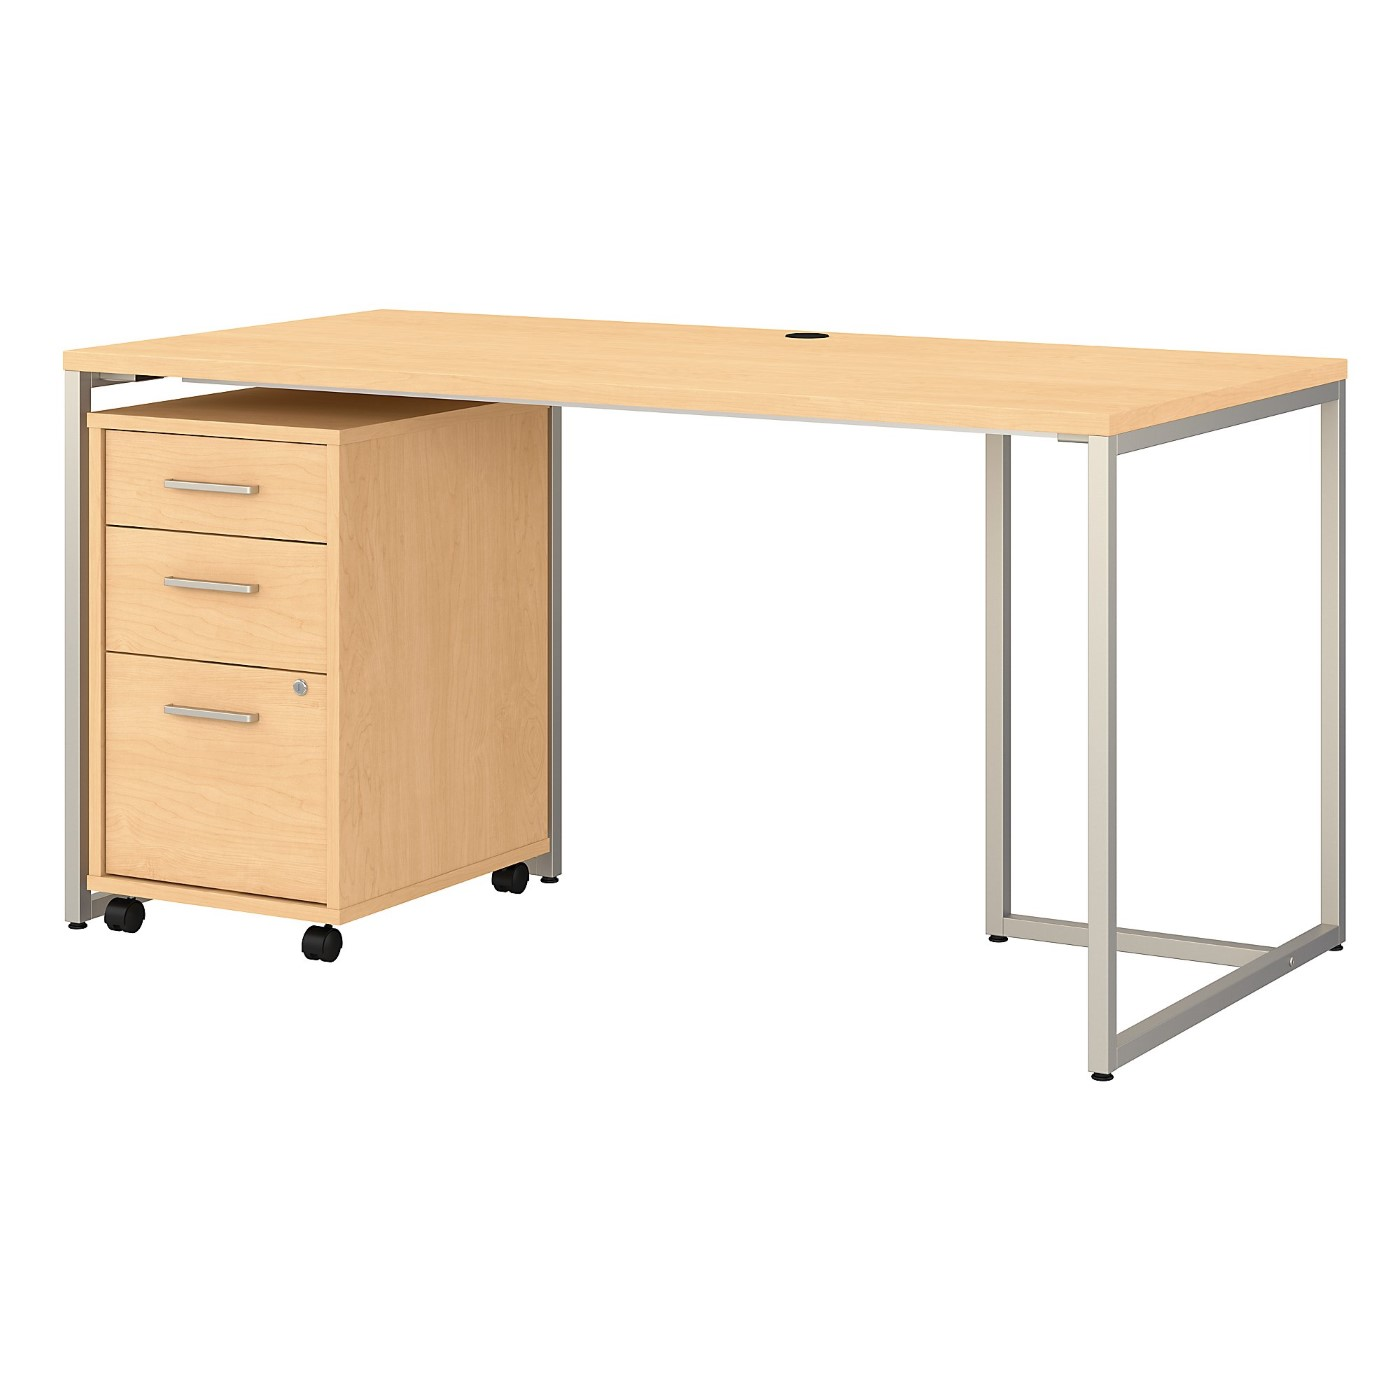 OFFICE BY KATHY IRELAND� METHOD 60W TABLE DESK WITH 3 DRAWER MOBILE FILE CABINET. FREE SHIPPING